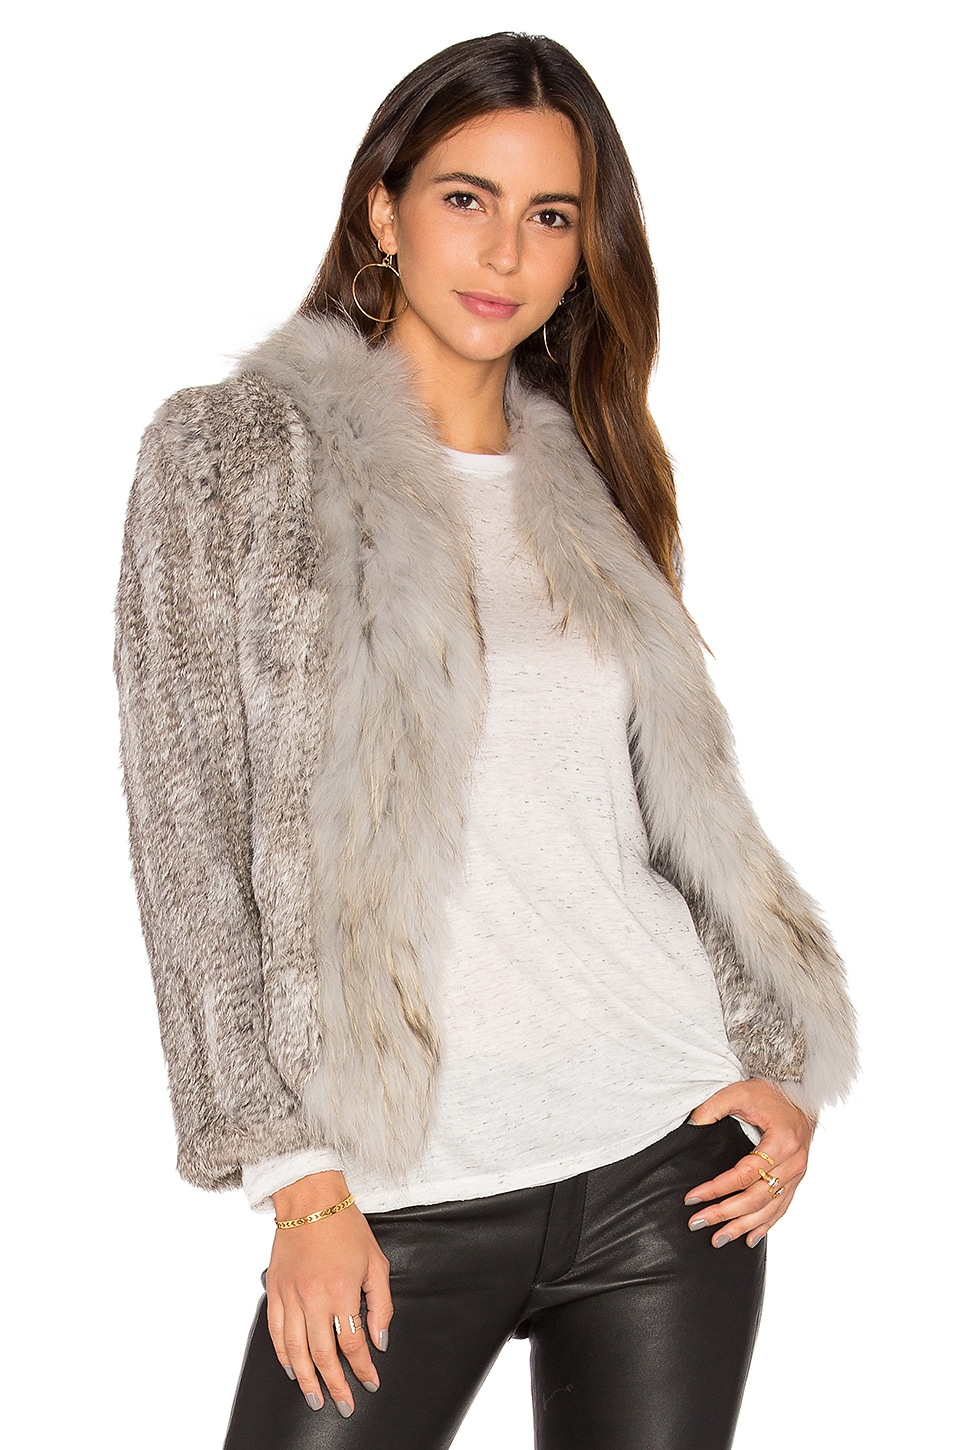 Frill Collar Jacket with Fox and Rabbit Fur by Arielle